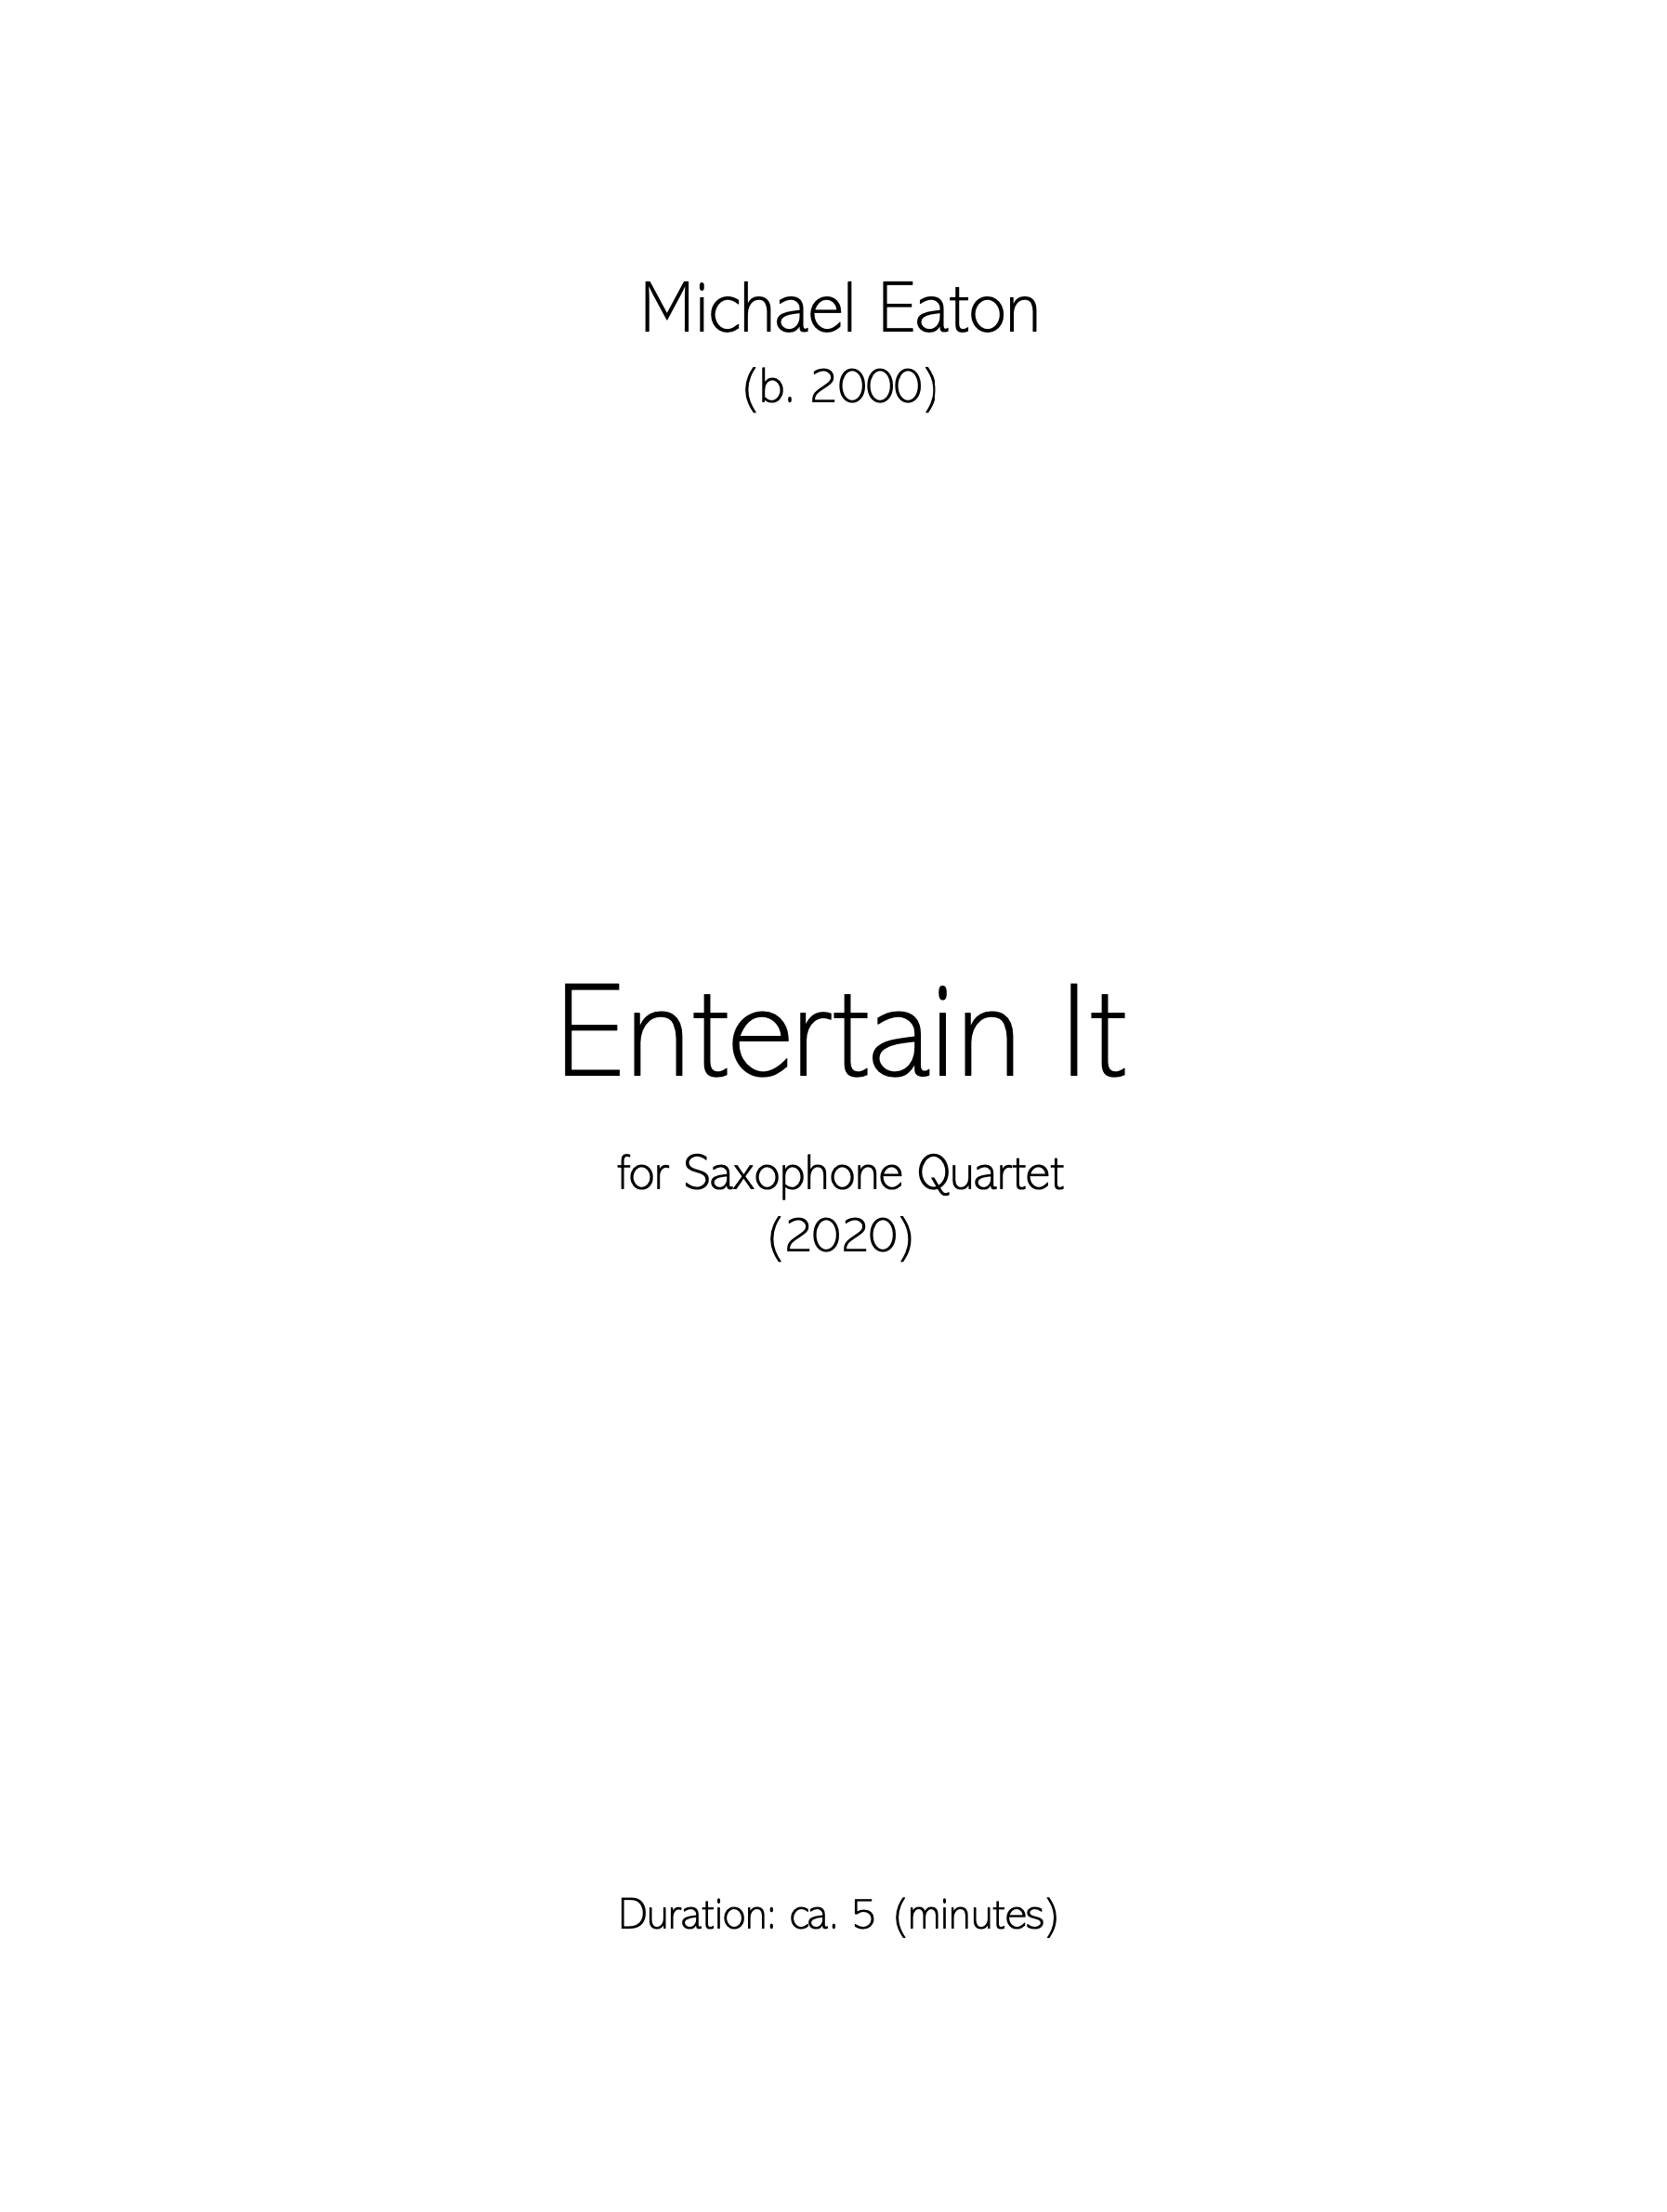 Entertain It by Michael Eaton